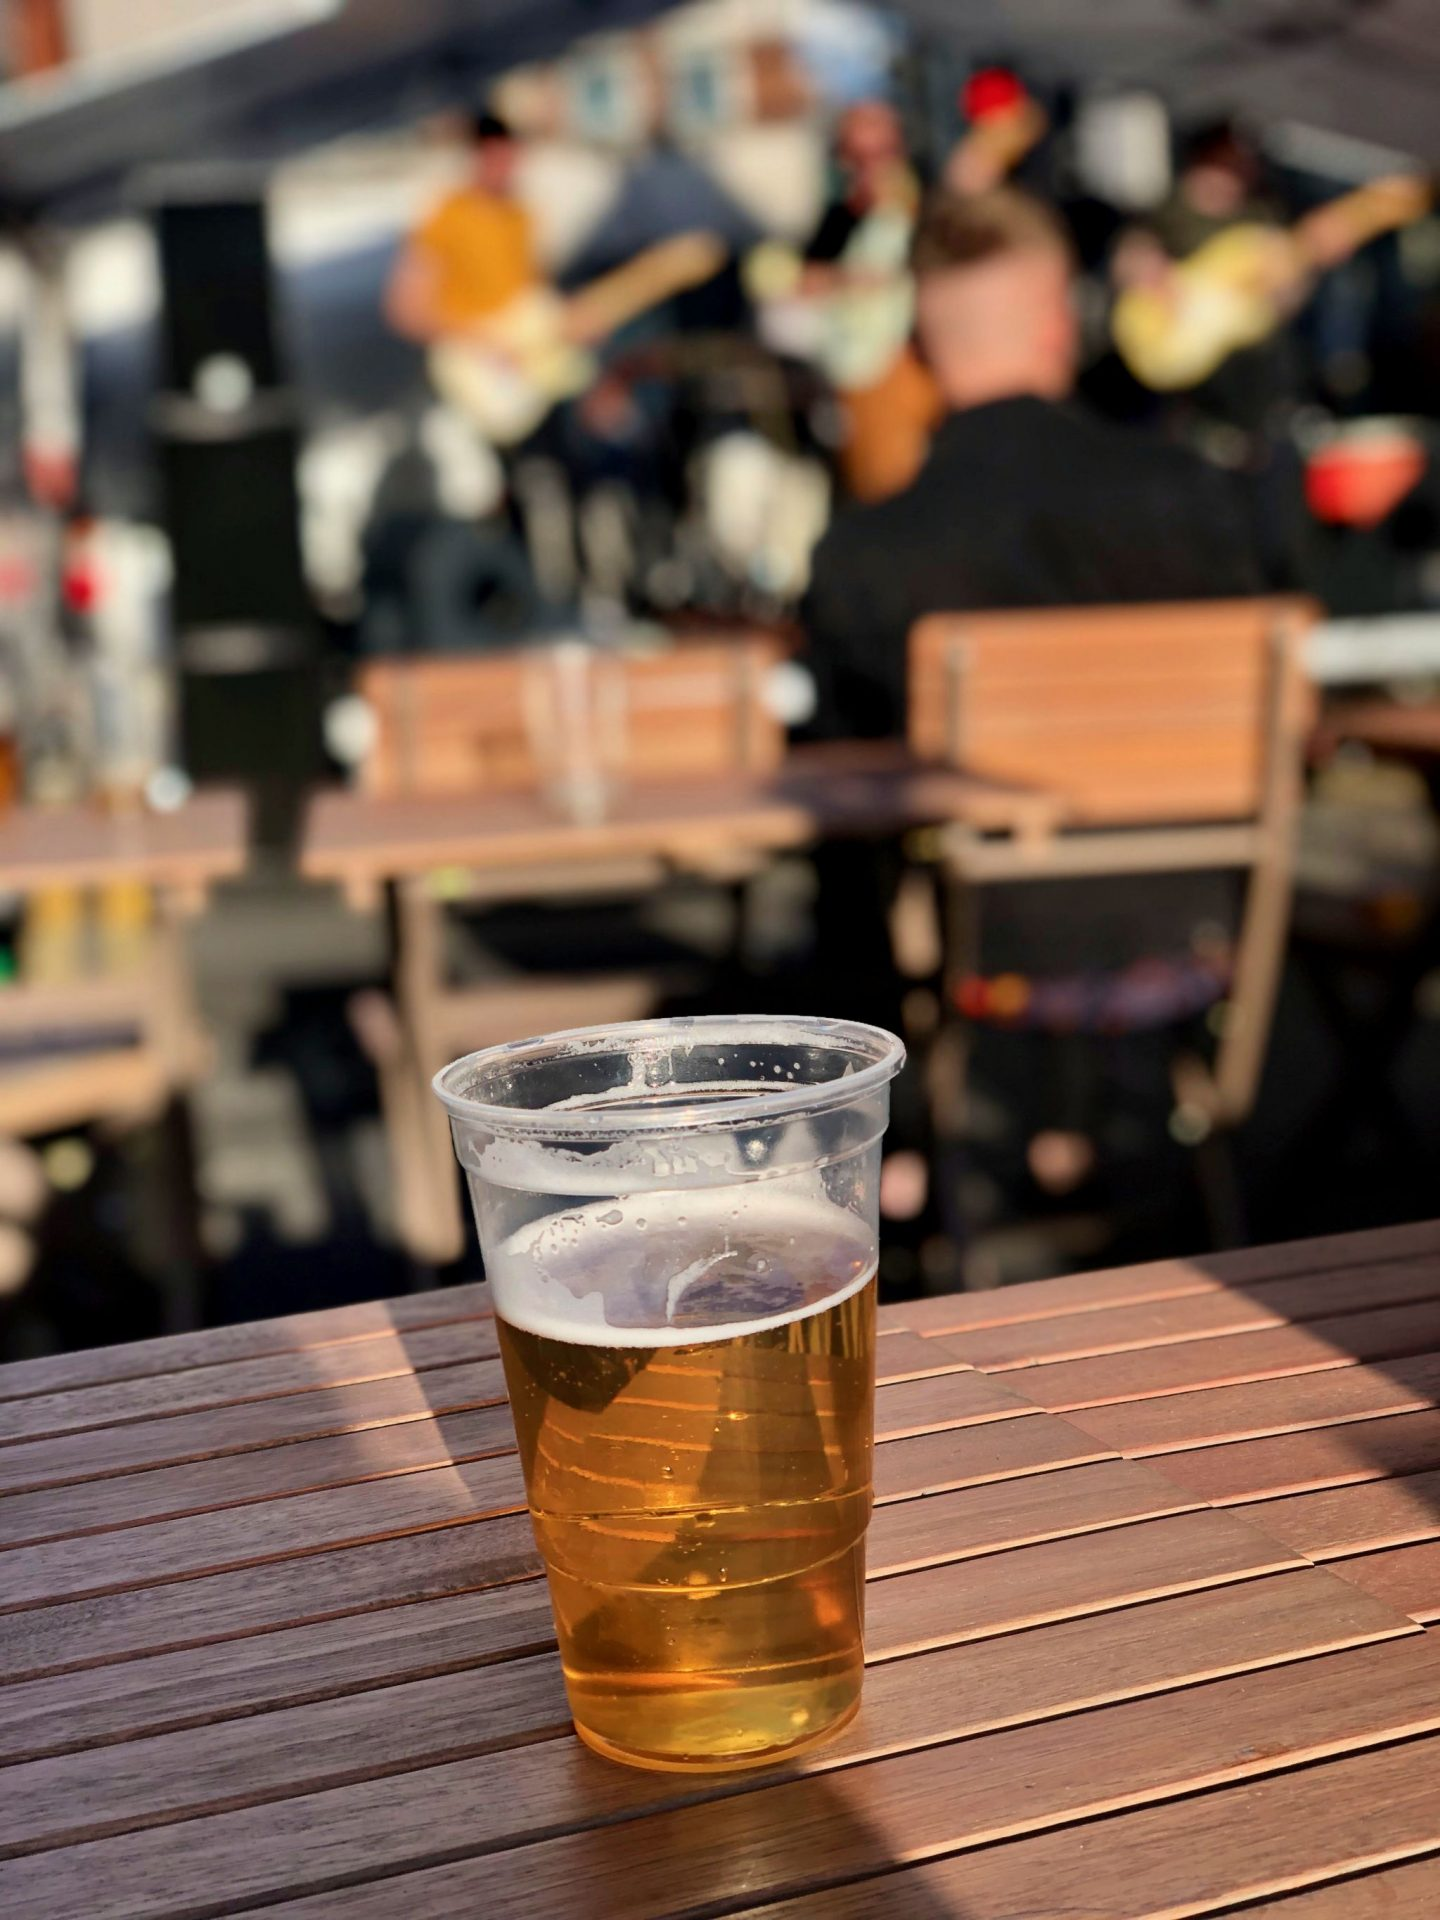 A pint of beer in a plastic cup on a rooftop bar in Leeds